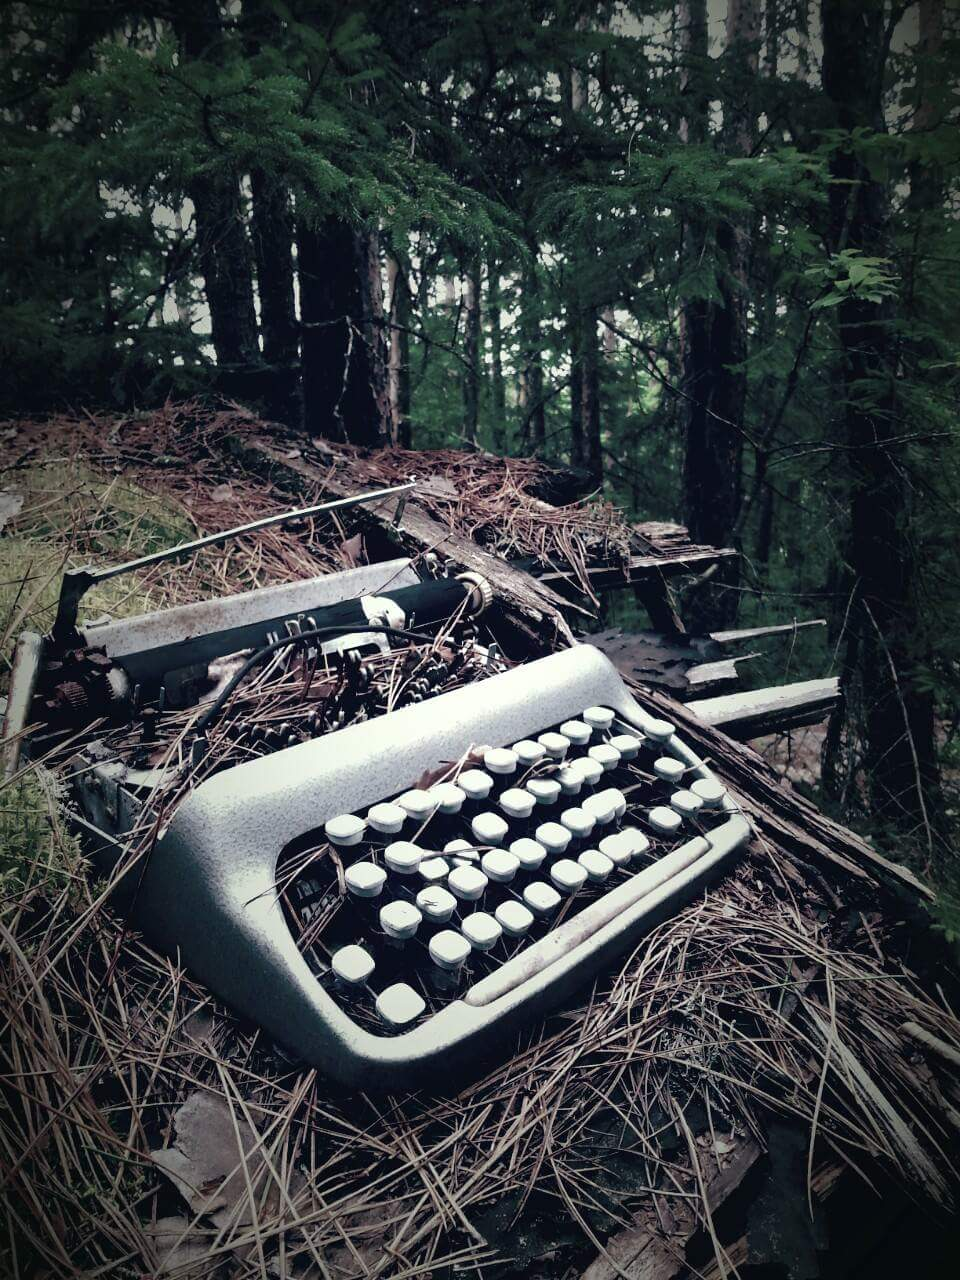 Found an old laptop in the woods